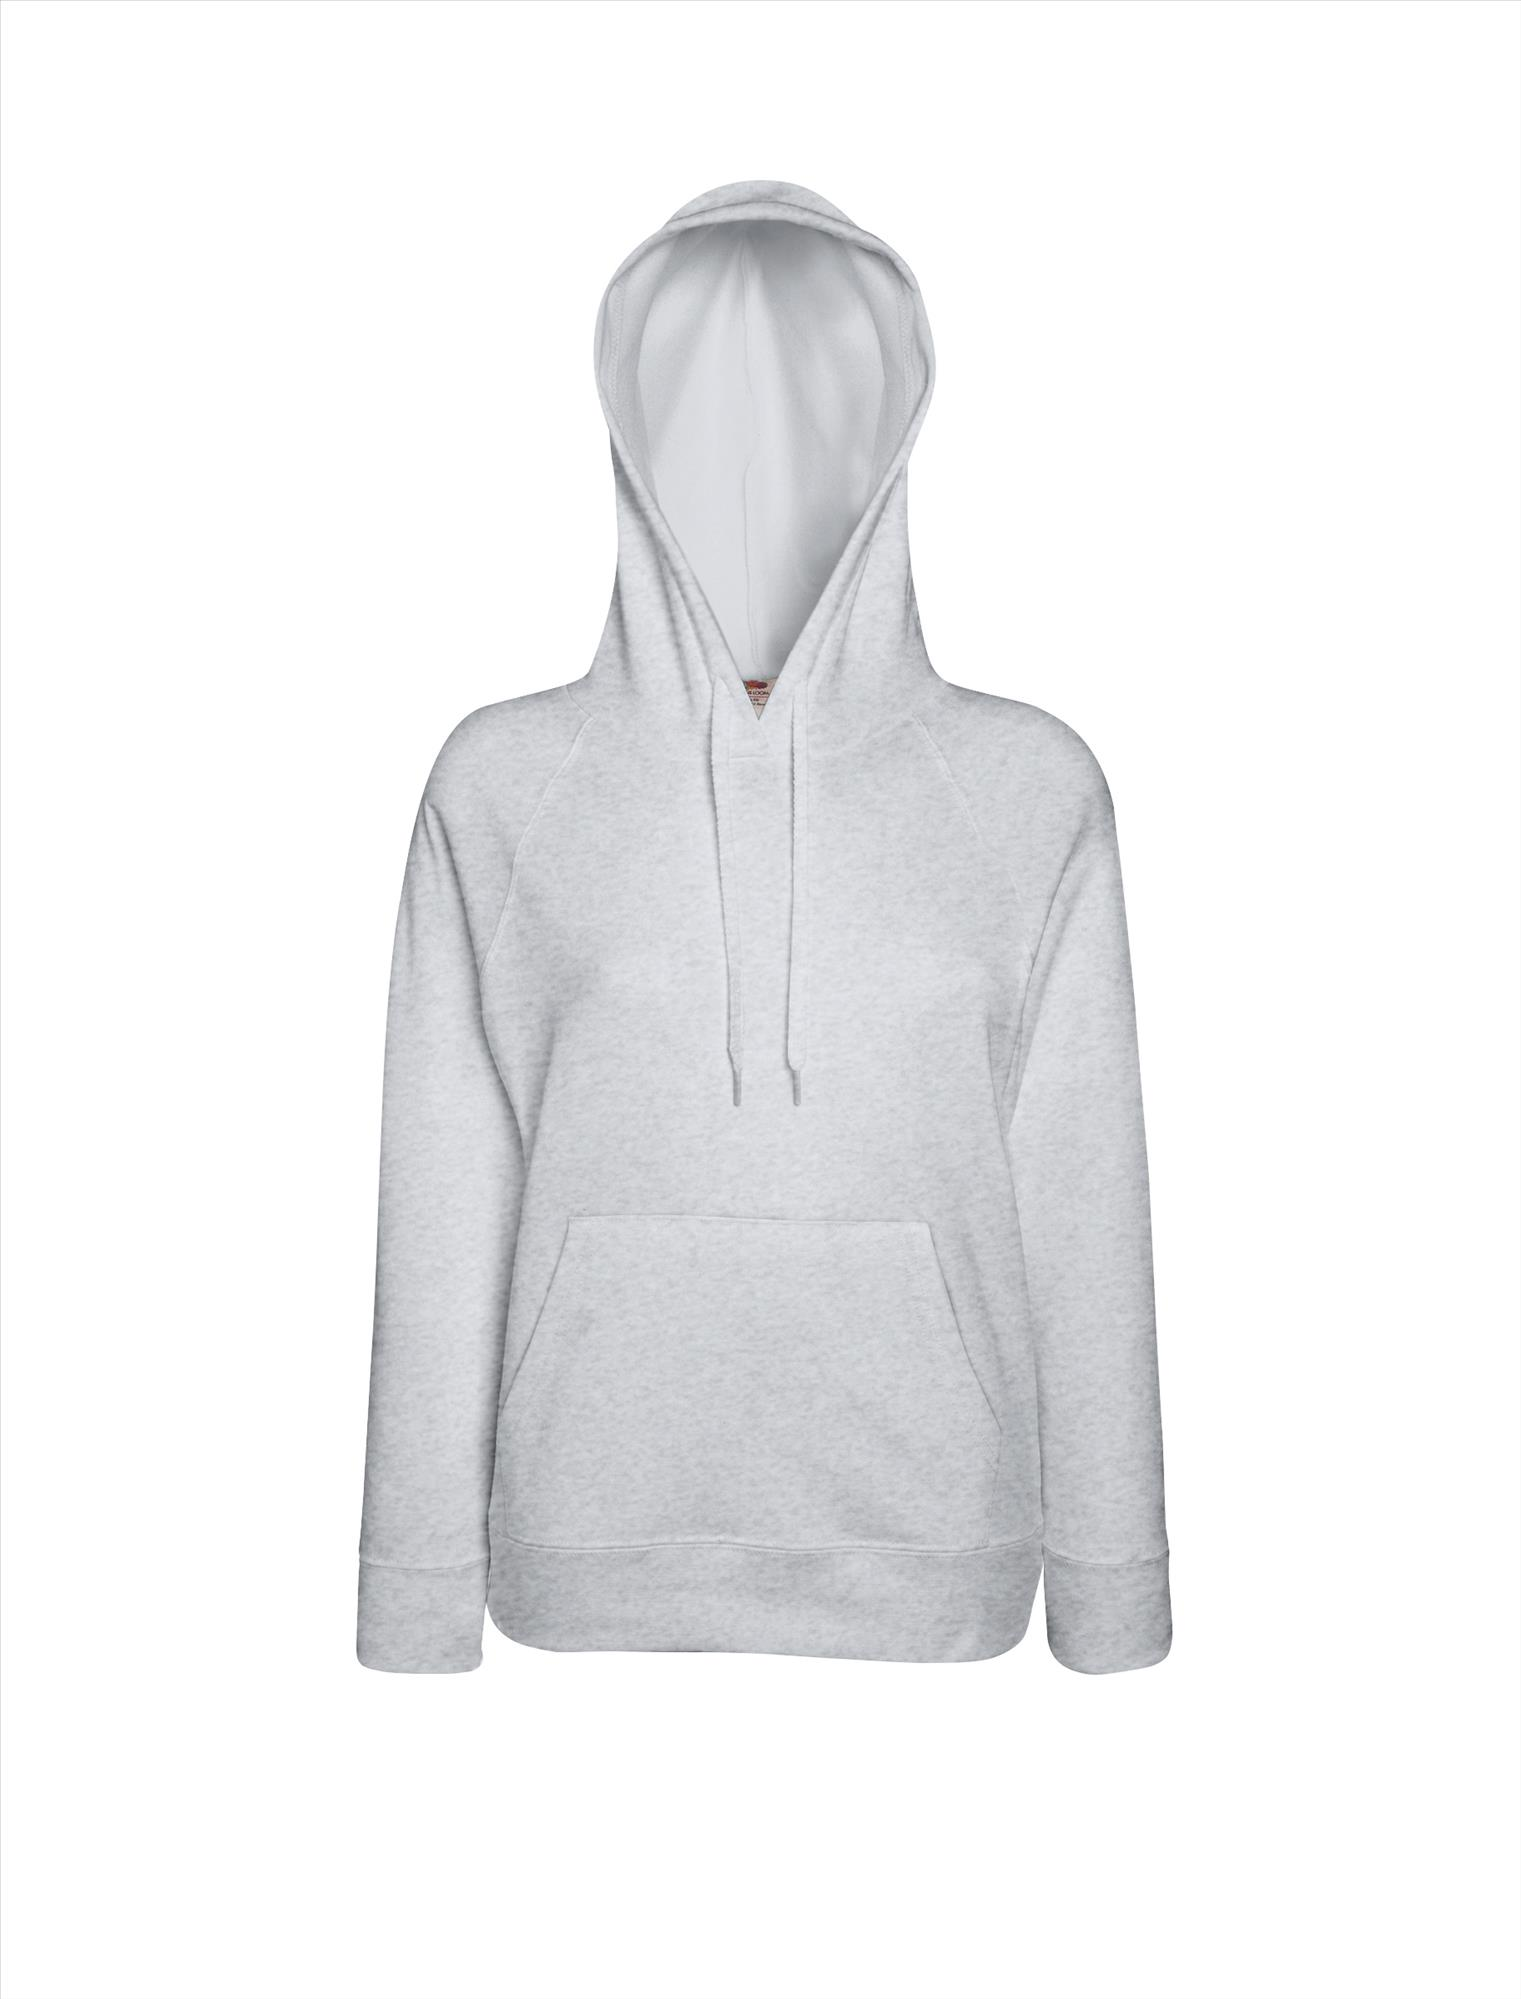 Budget dames hoodie heather grey